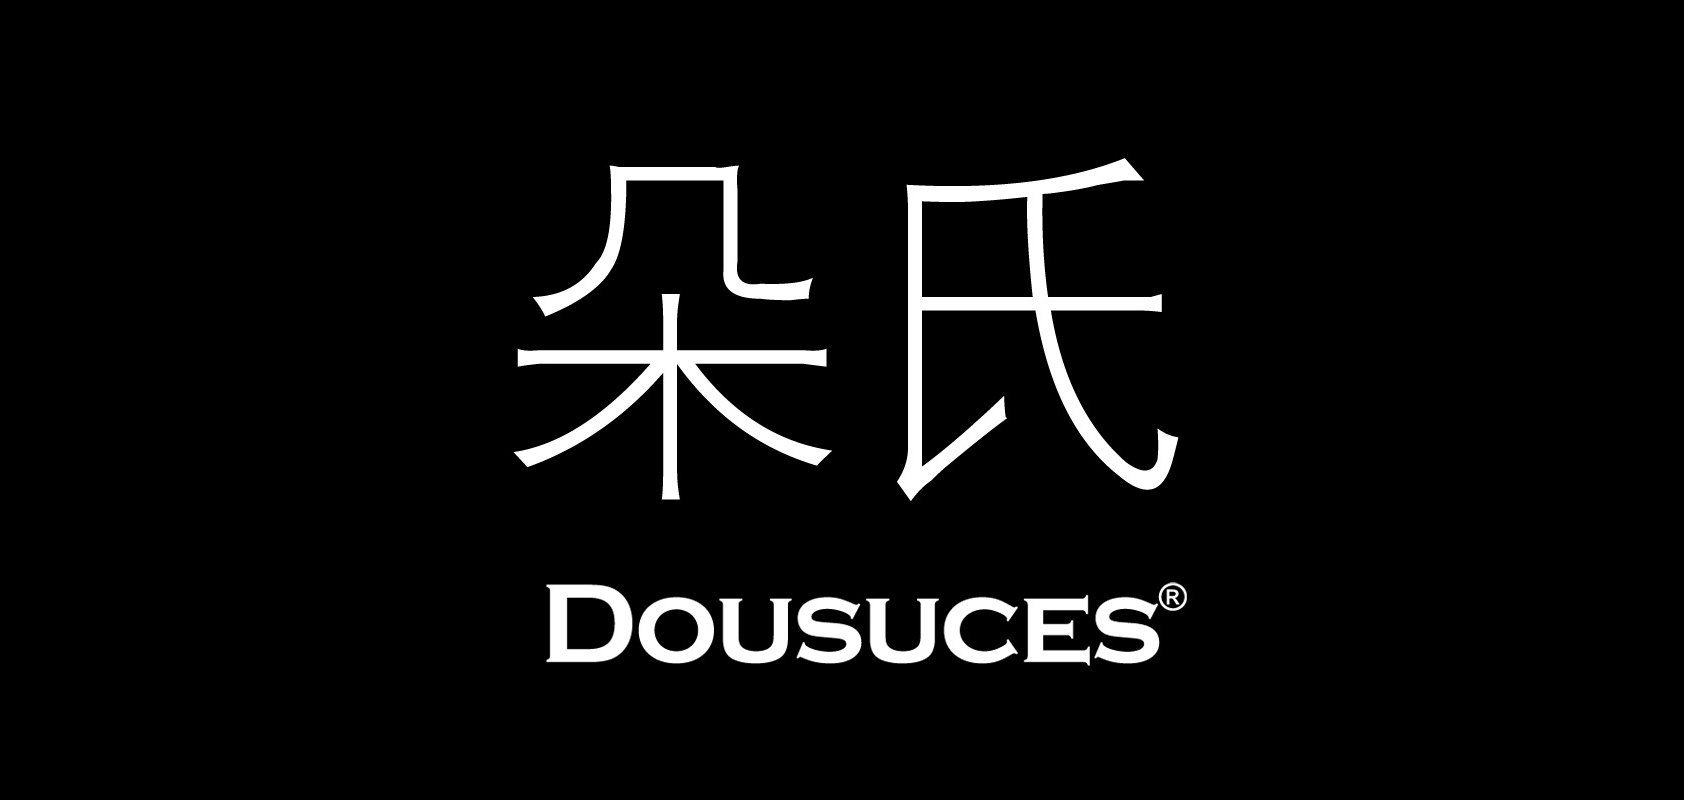 Dousuces